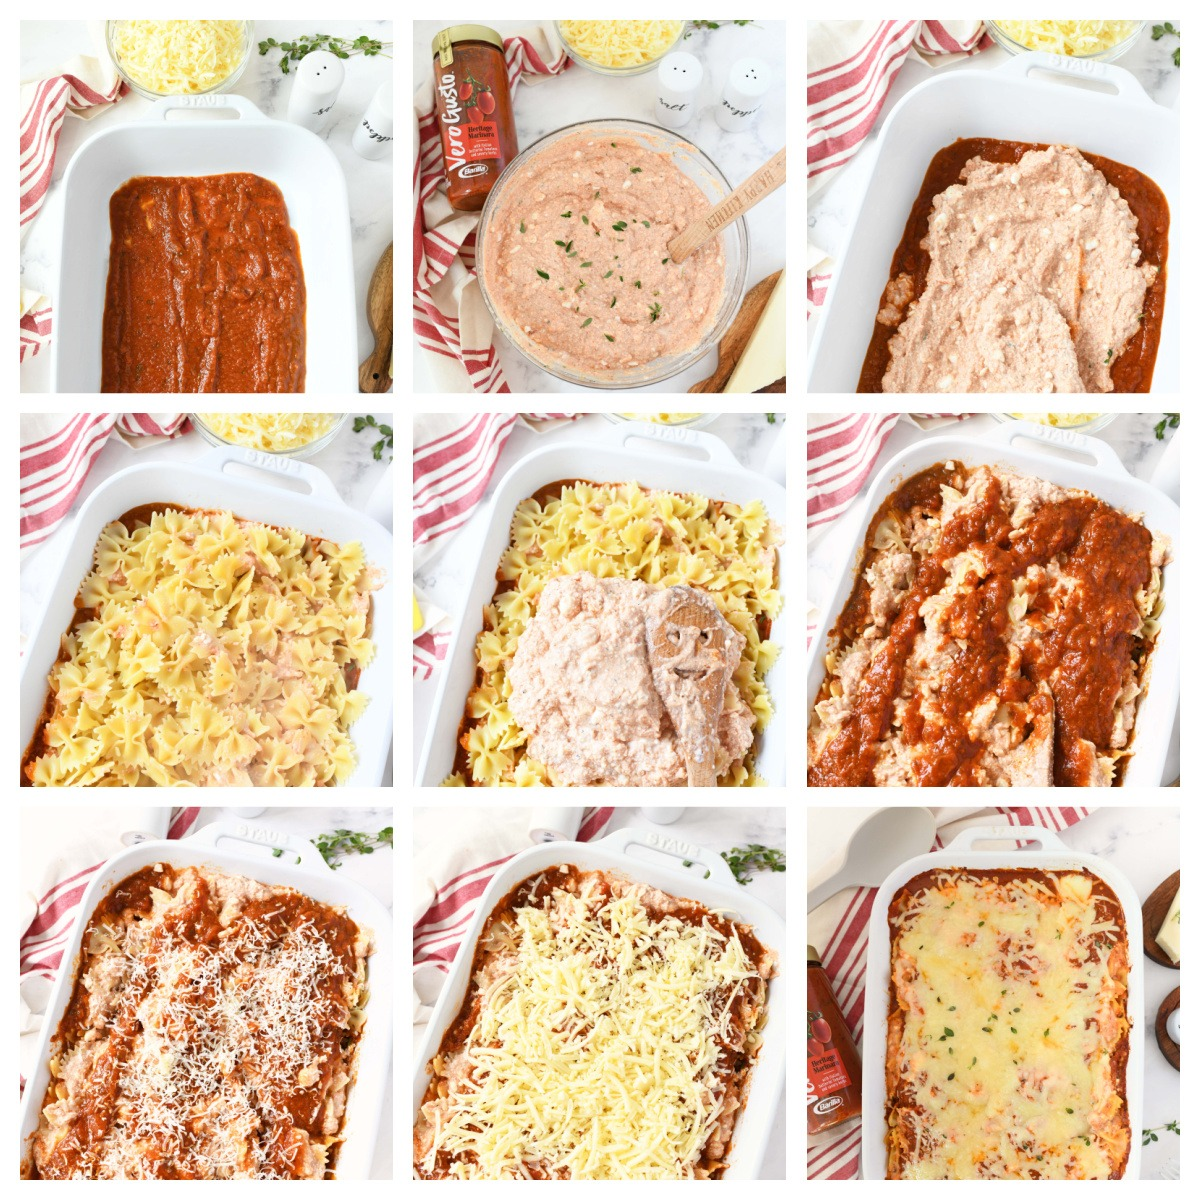 A nine image collage showing how to make four cheese pasta bake.